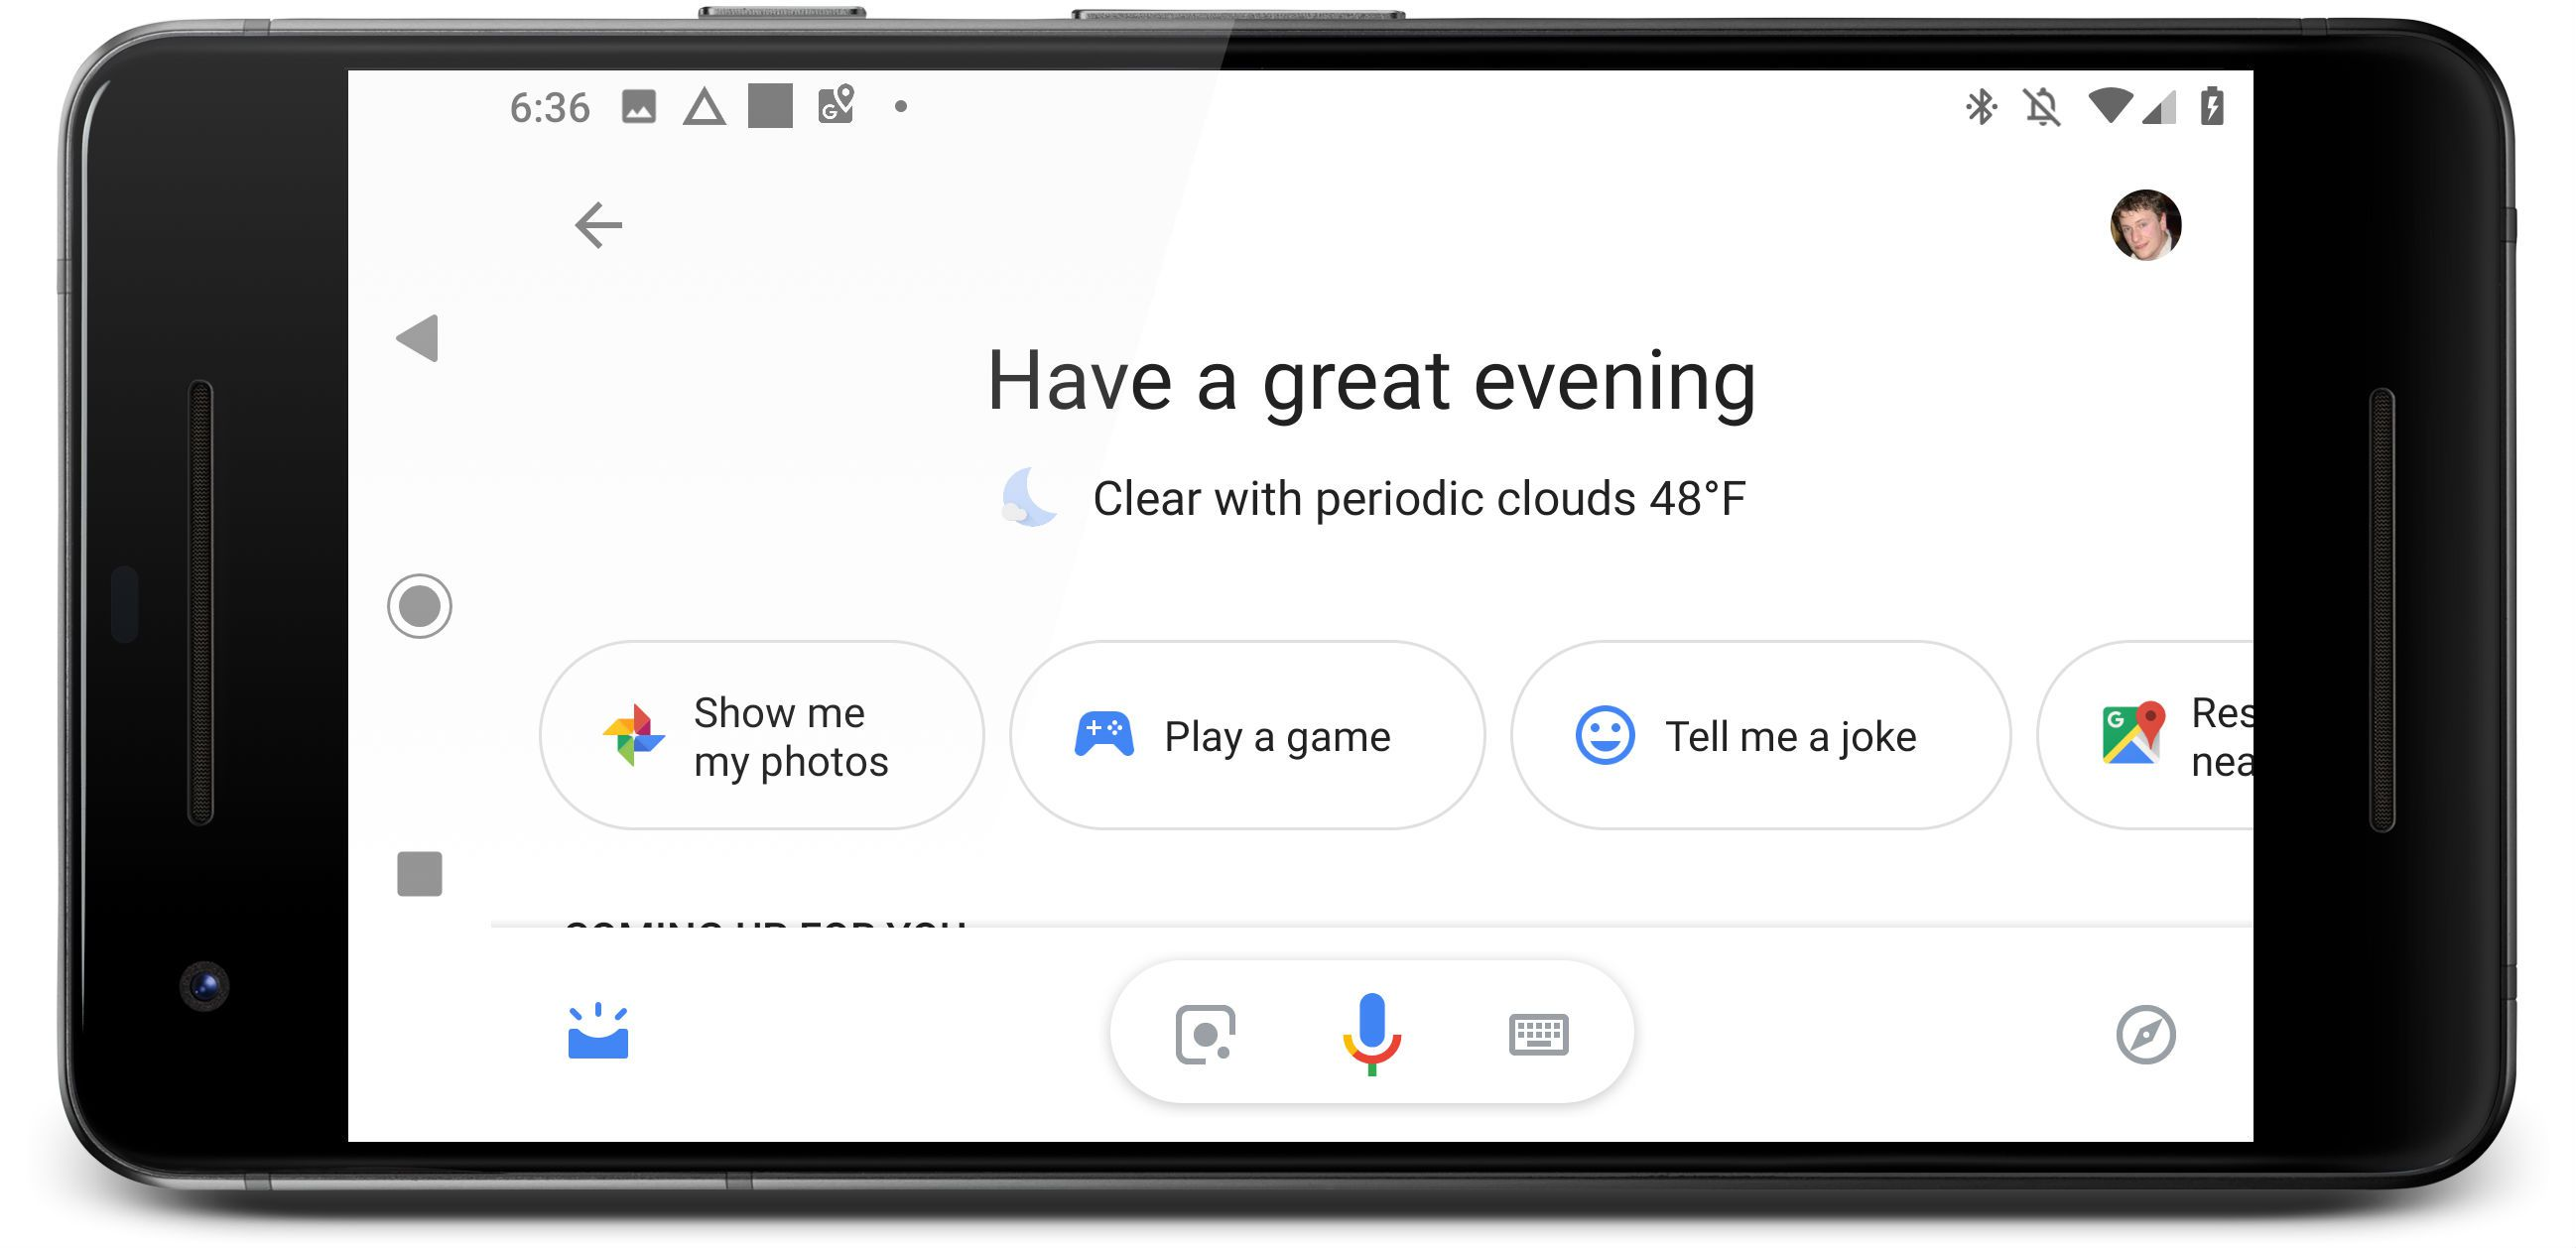 Why Won't Google Assistant Work With My Phone?